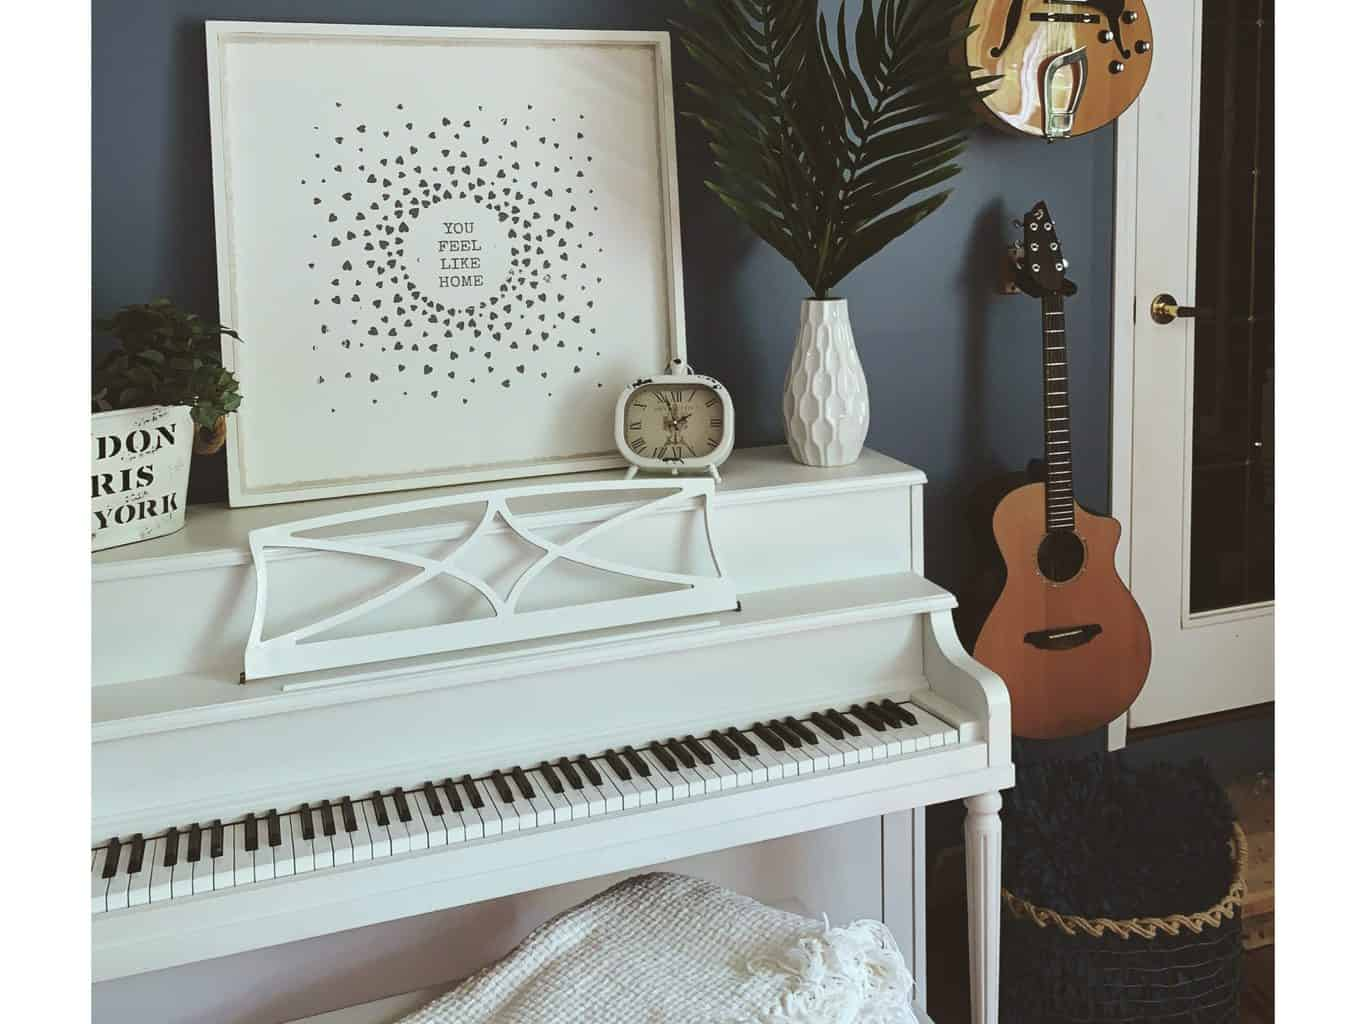 Bringing the Sound of Music Into Your Home